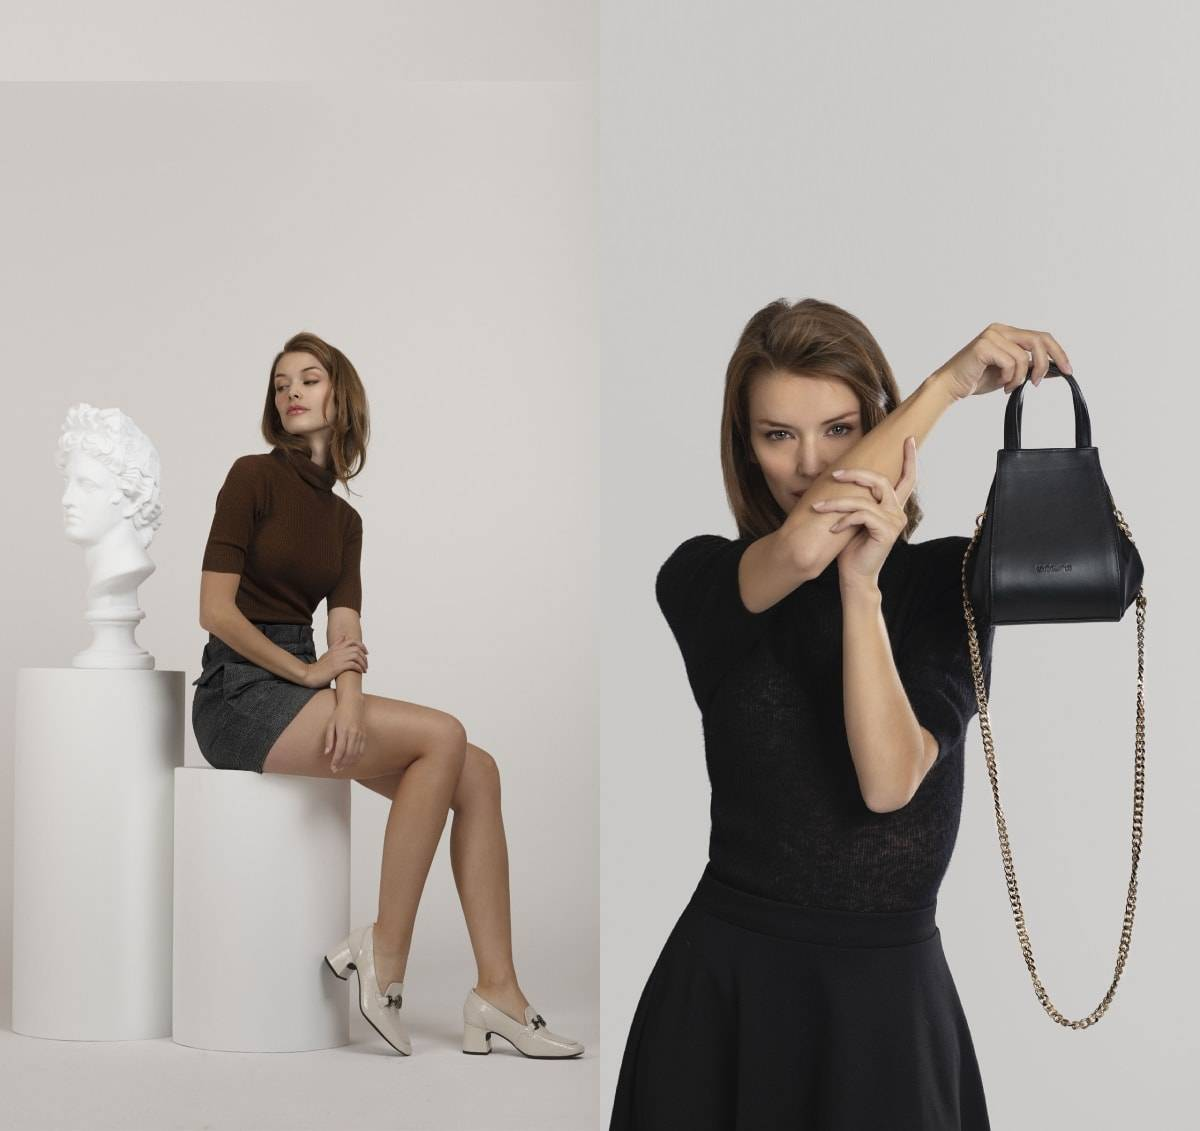 Presenting the Unisa FW21/22 collection: versatile footwear and soft bags